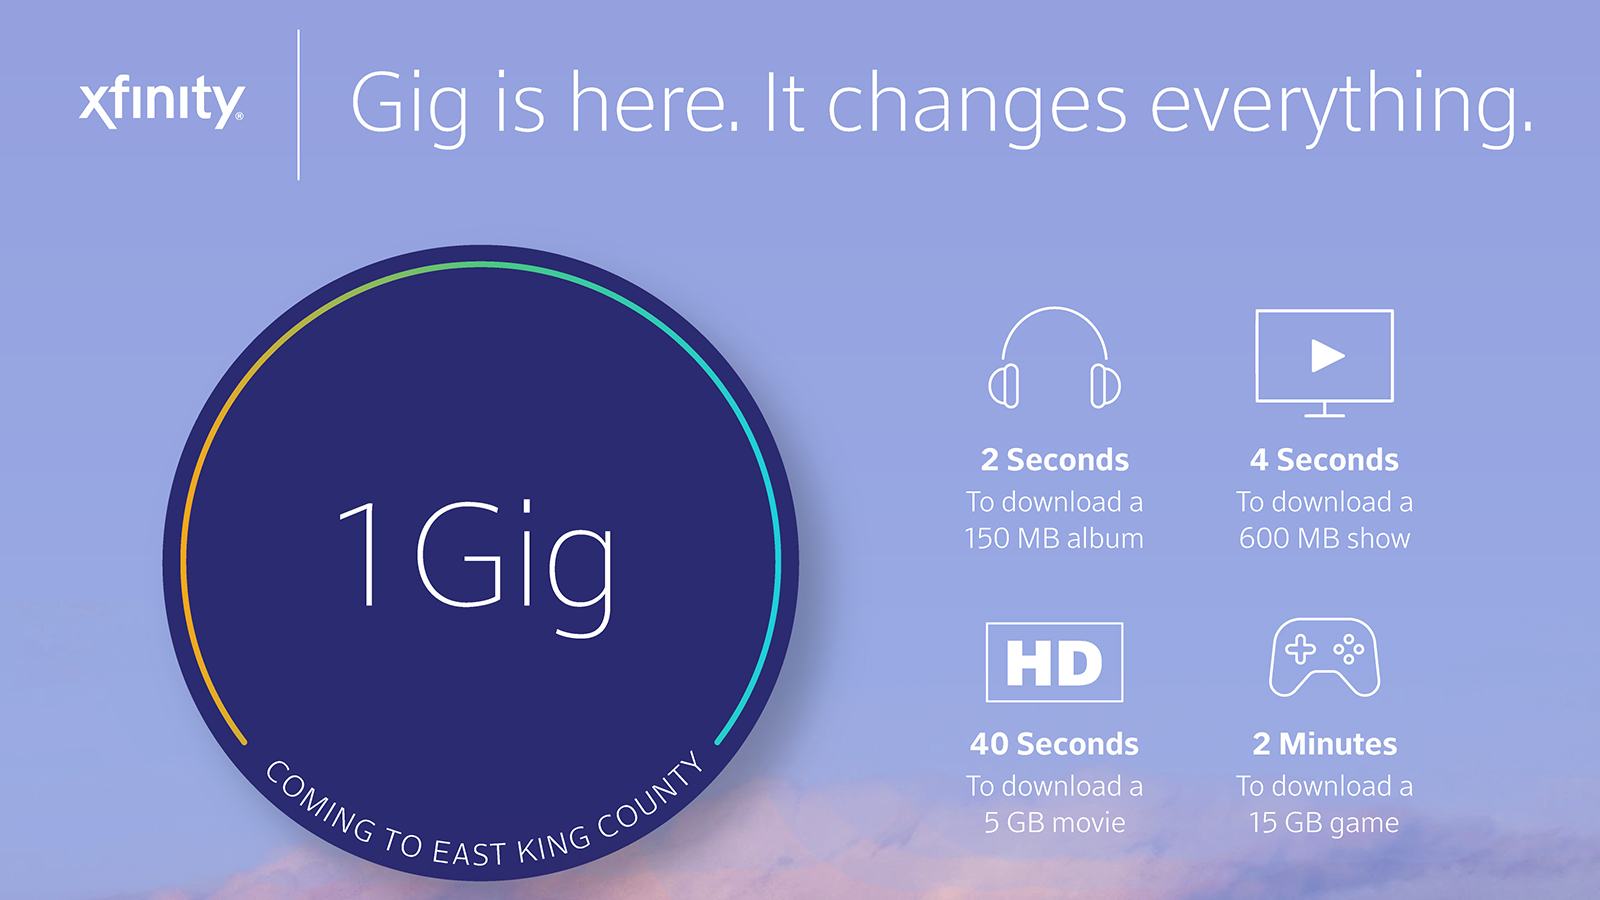 Remarkable Comcast Rolls Out Gigabit Internet Service In East King County Wiring Digital Resources Lavecompassionincorg